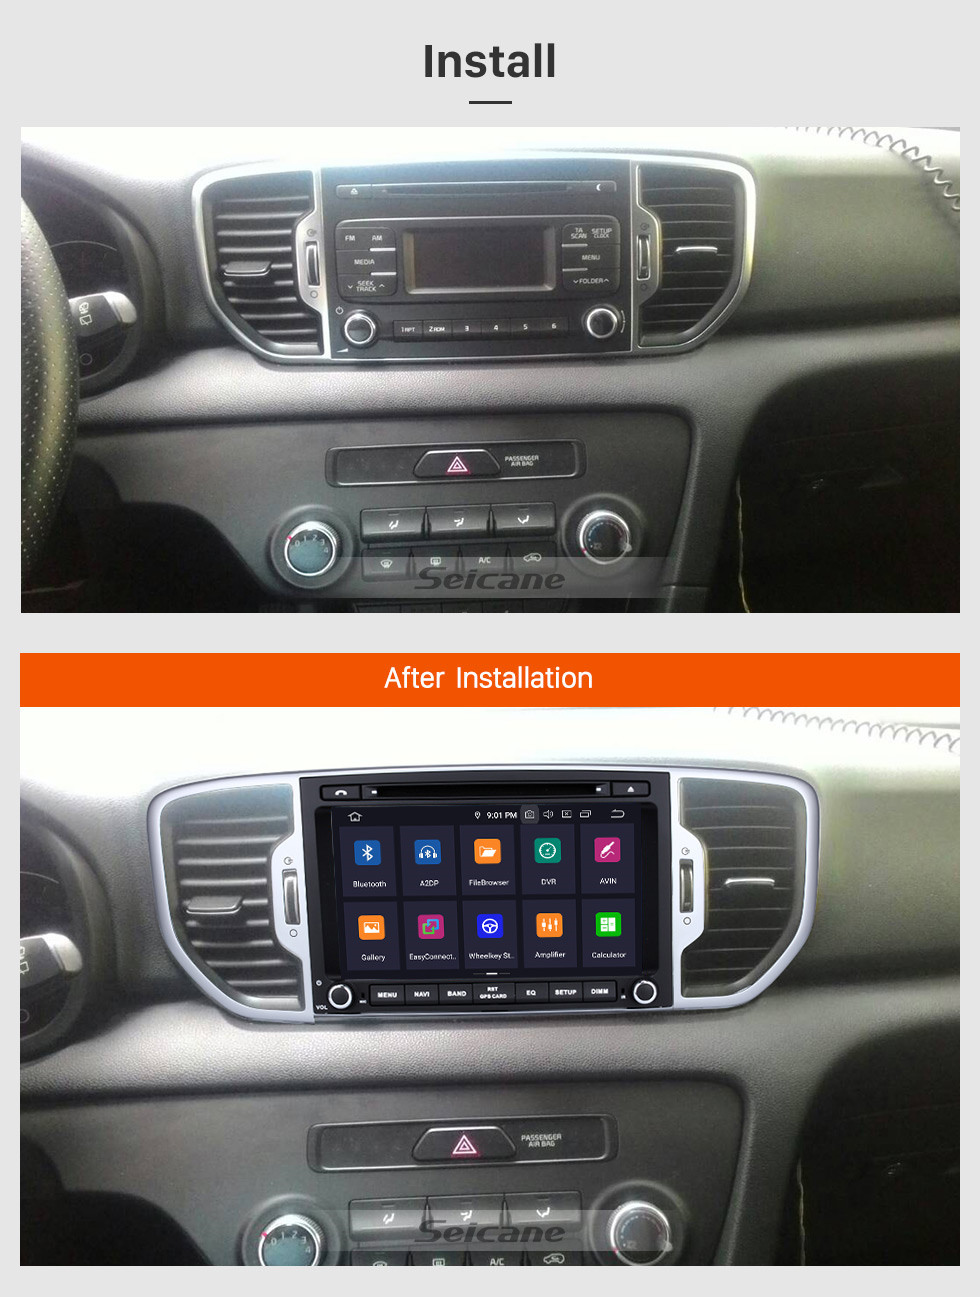 Seicane 8 inch 2016 Kia Sportage Android 8.0 DVD Player Radio GPS Navigation System with 1024*600 Touchscreen Bluetooth Music 4G WIFI Backup Camera  DVR  DAB+ TPMS